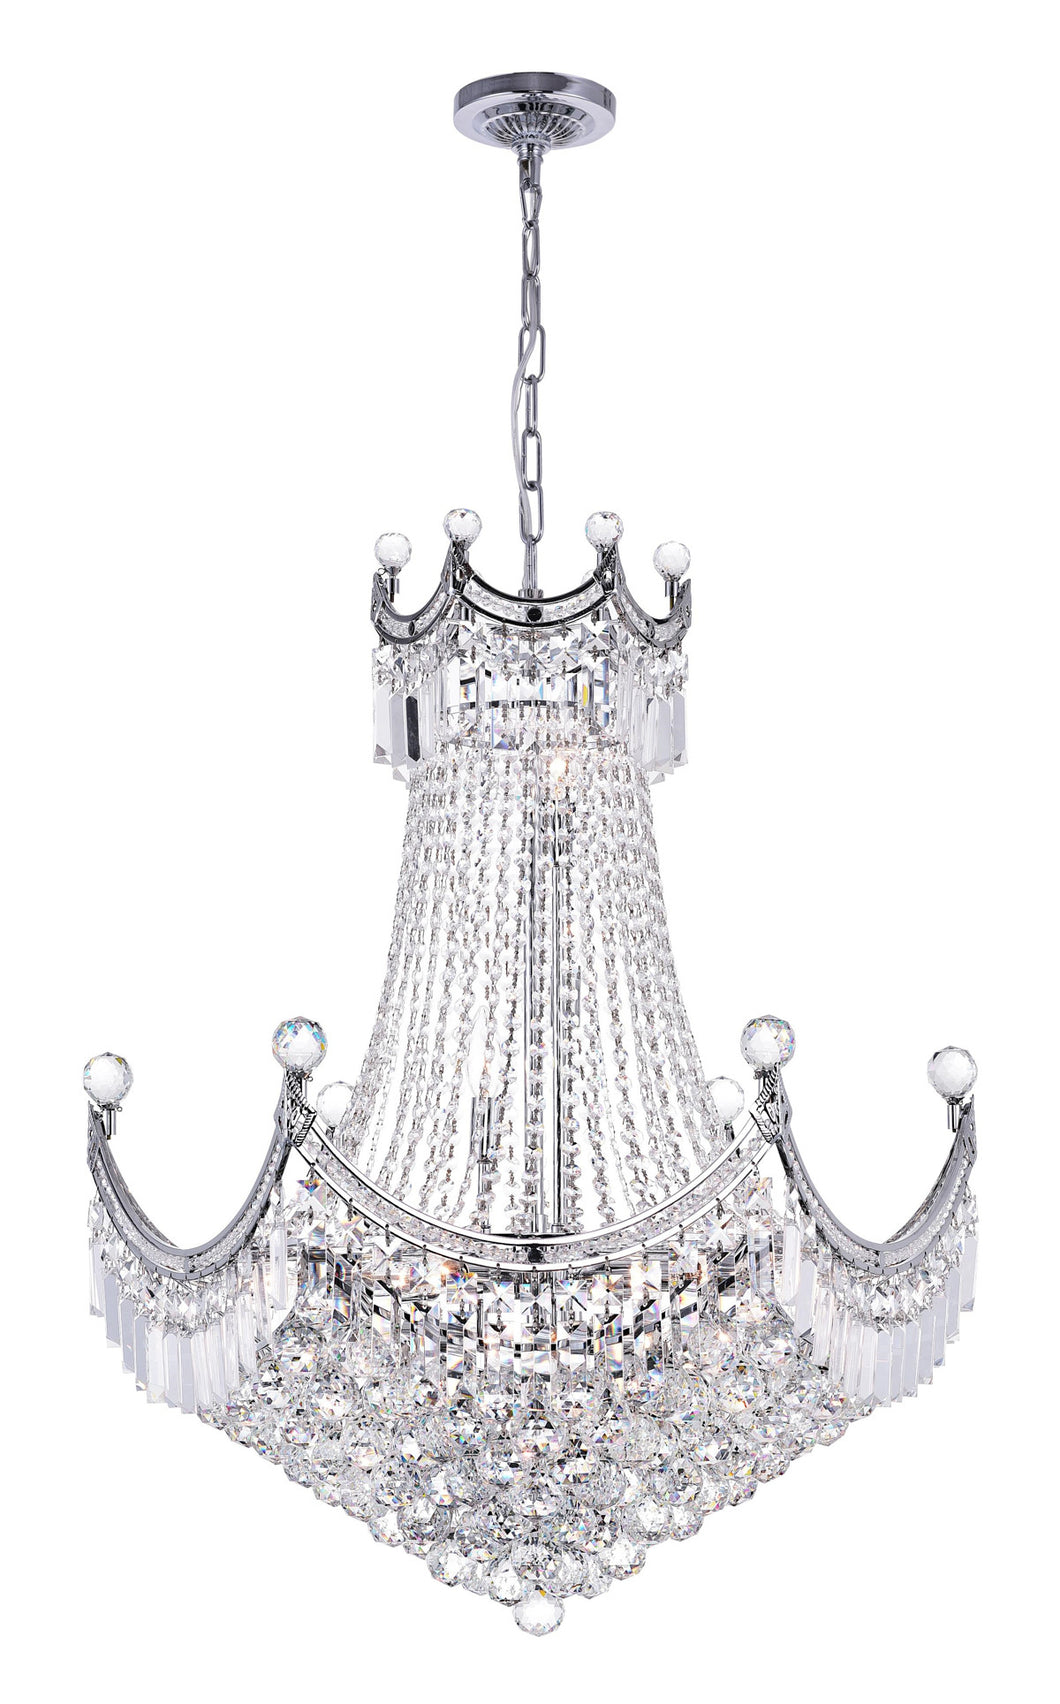 15 Light Down Chandelier with Chrome finish